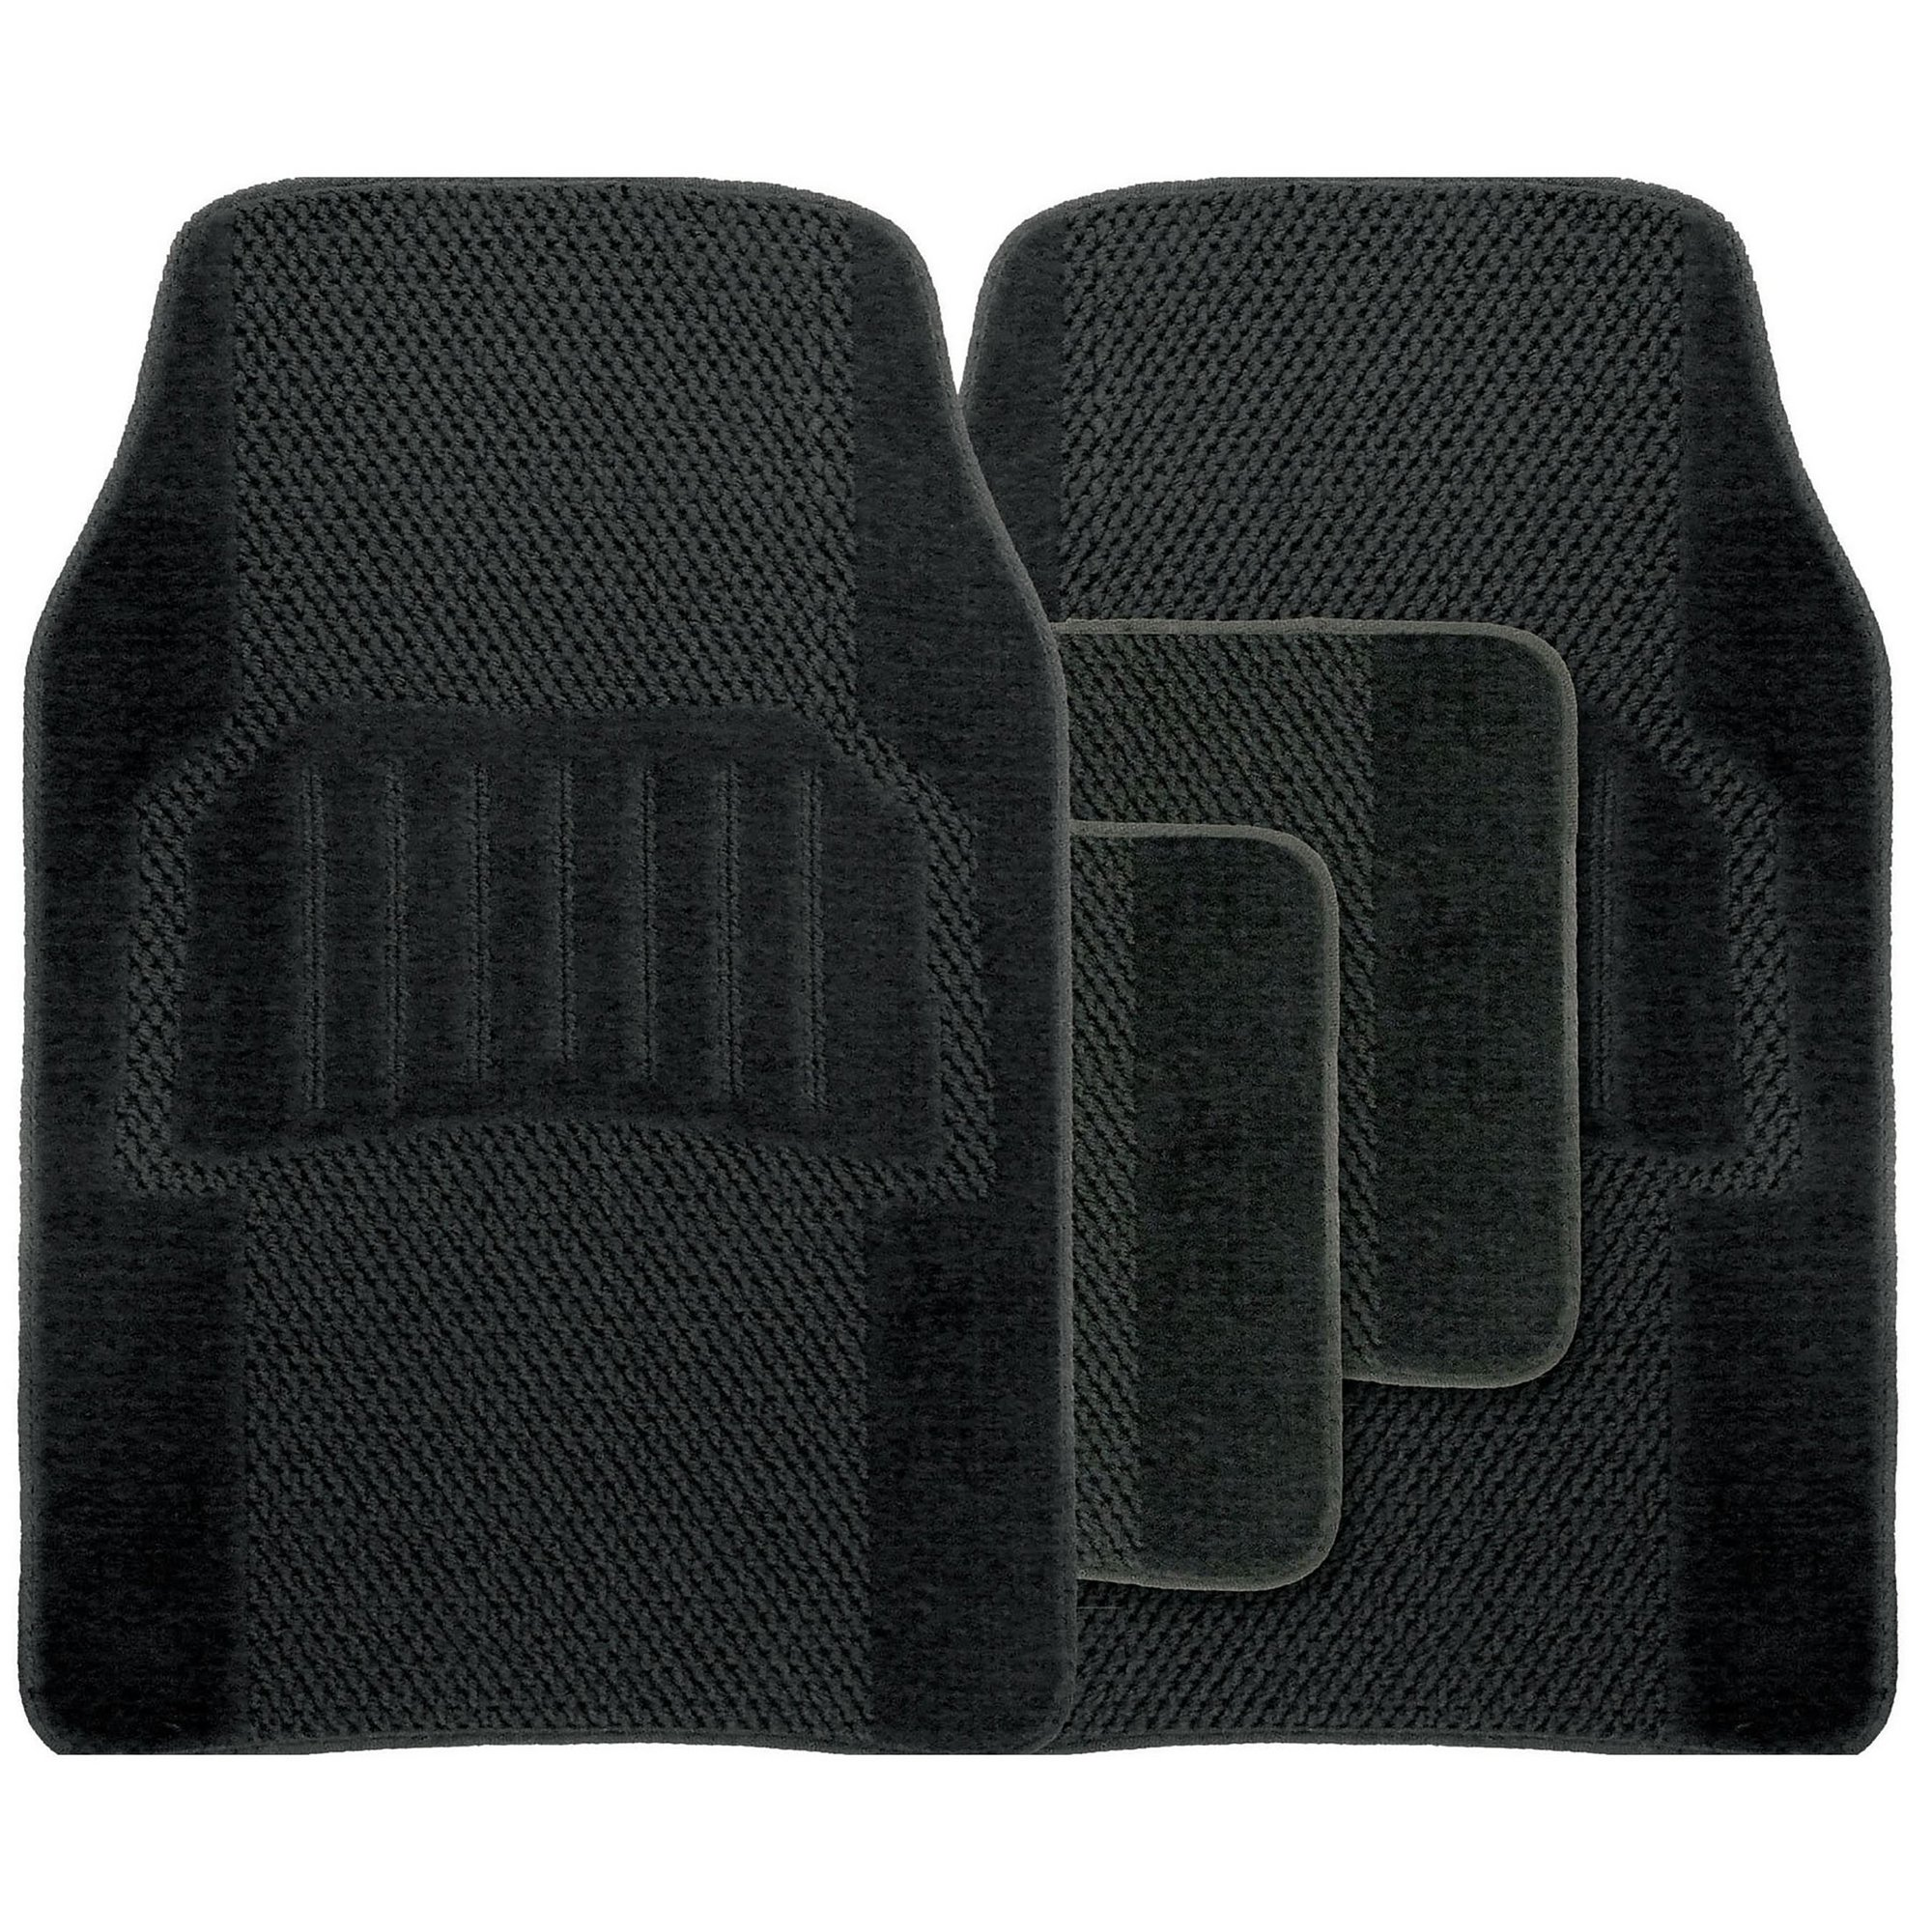 Image of Premium Carpet Car Mat Set with Stain Protector